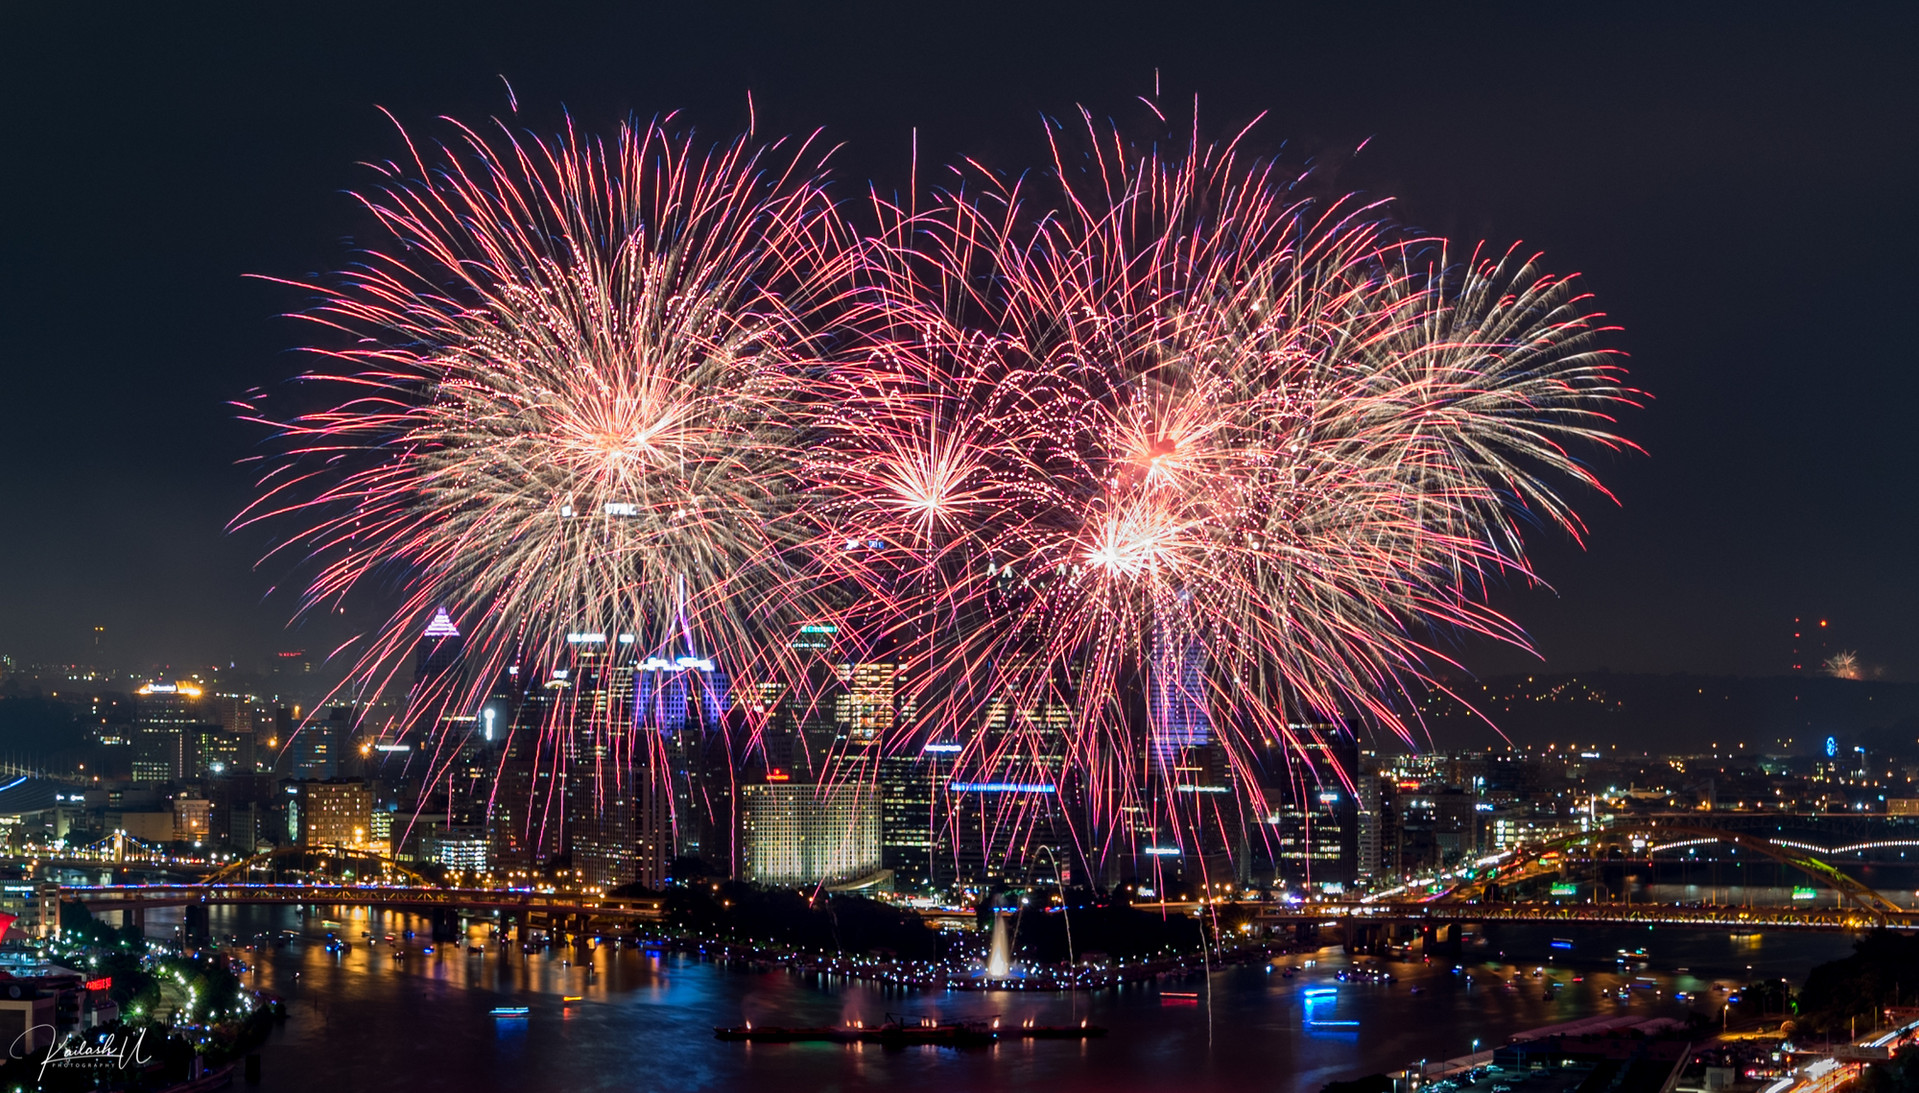 Happy 4th from the Burgh